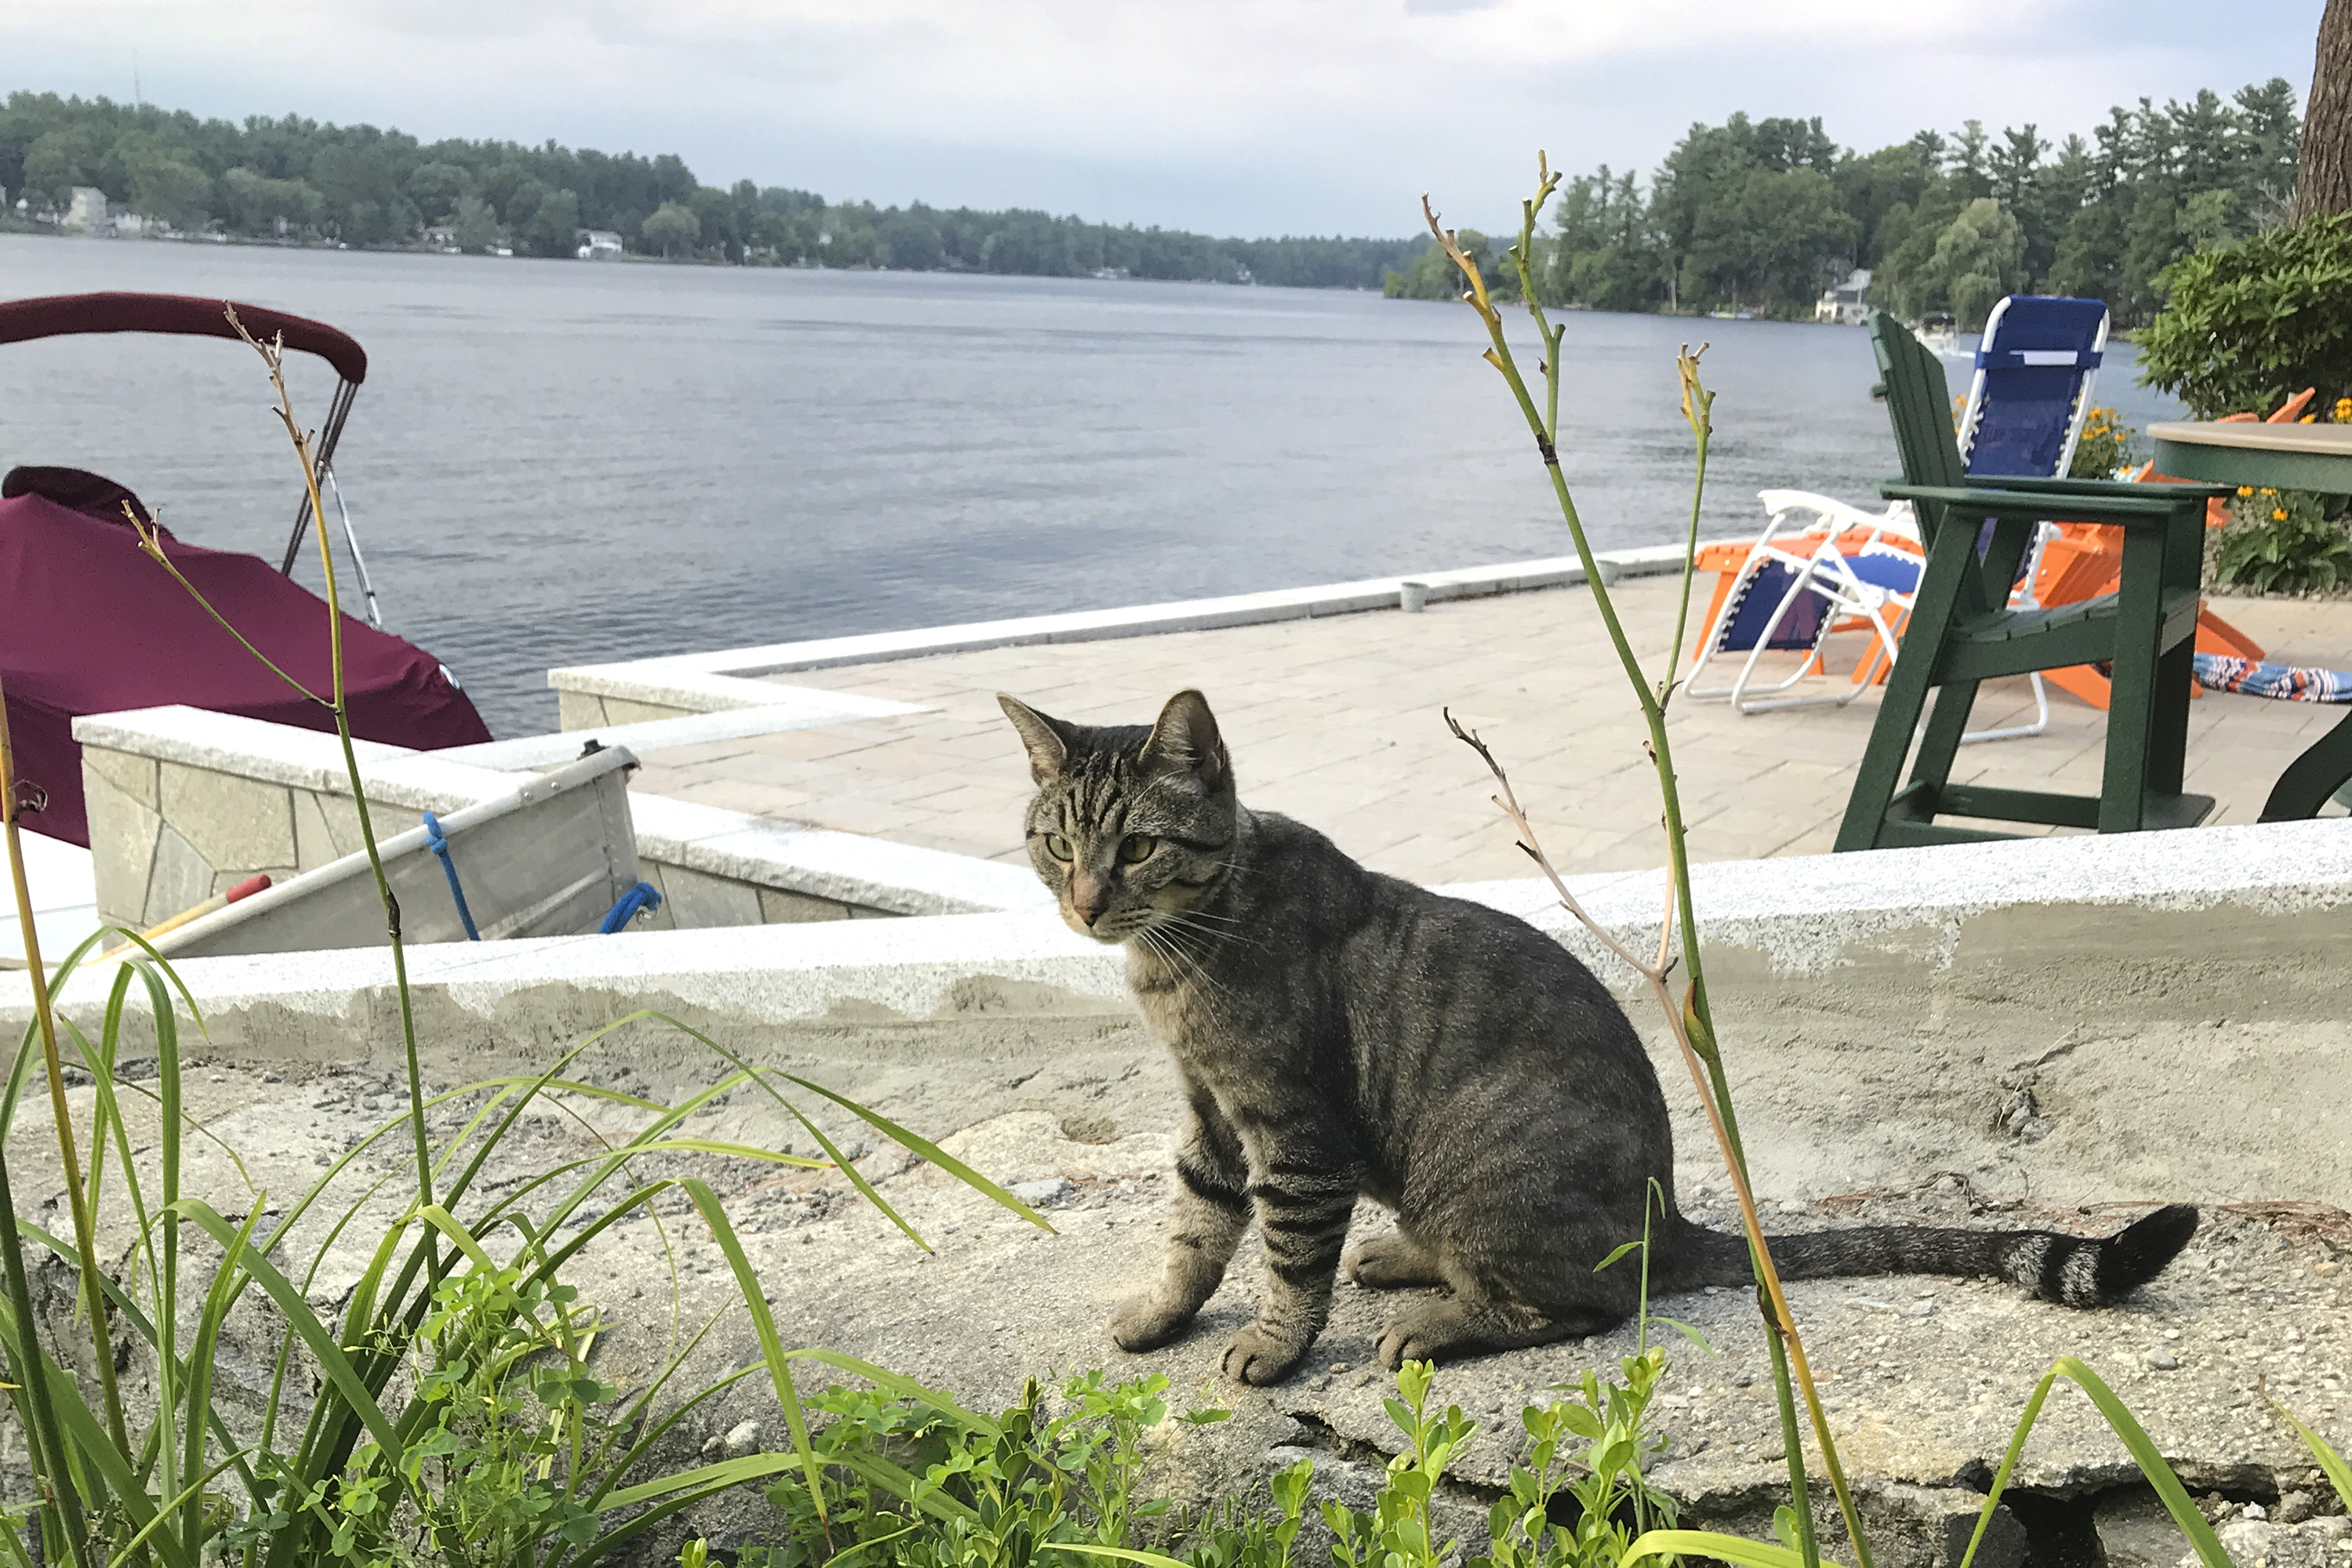 In this July 27, 2018 photo provided by New Hampshire State Rep. Daryl Abbas, Arrow, the cat whose death has inspired legislation to put cats on equal footing with dogs, at least when they are run over. Abbas, is the sponsor of a bill that would require drivers who injure or kill cats to notify police or the animals' owners. The reporting requirement already is in place for dogs.